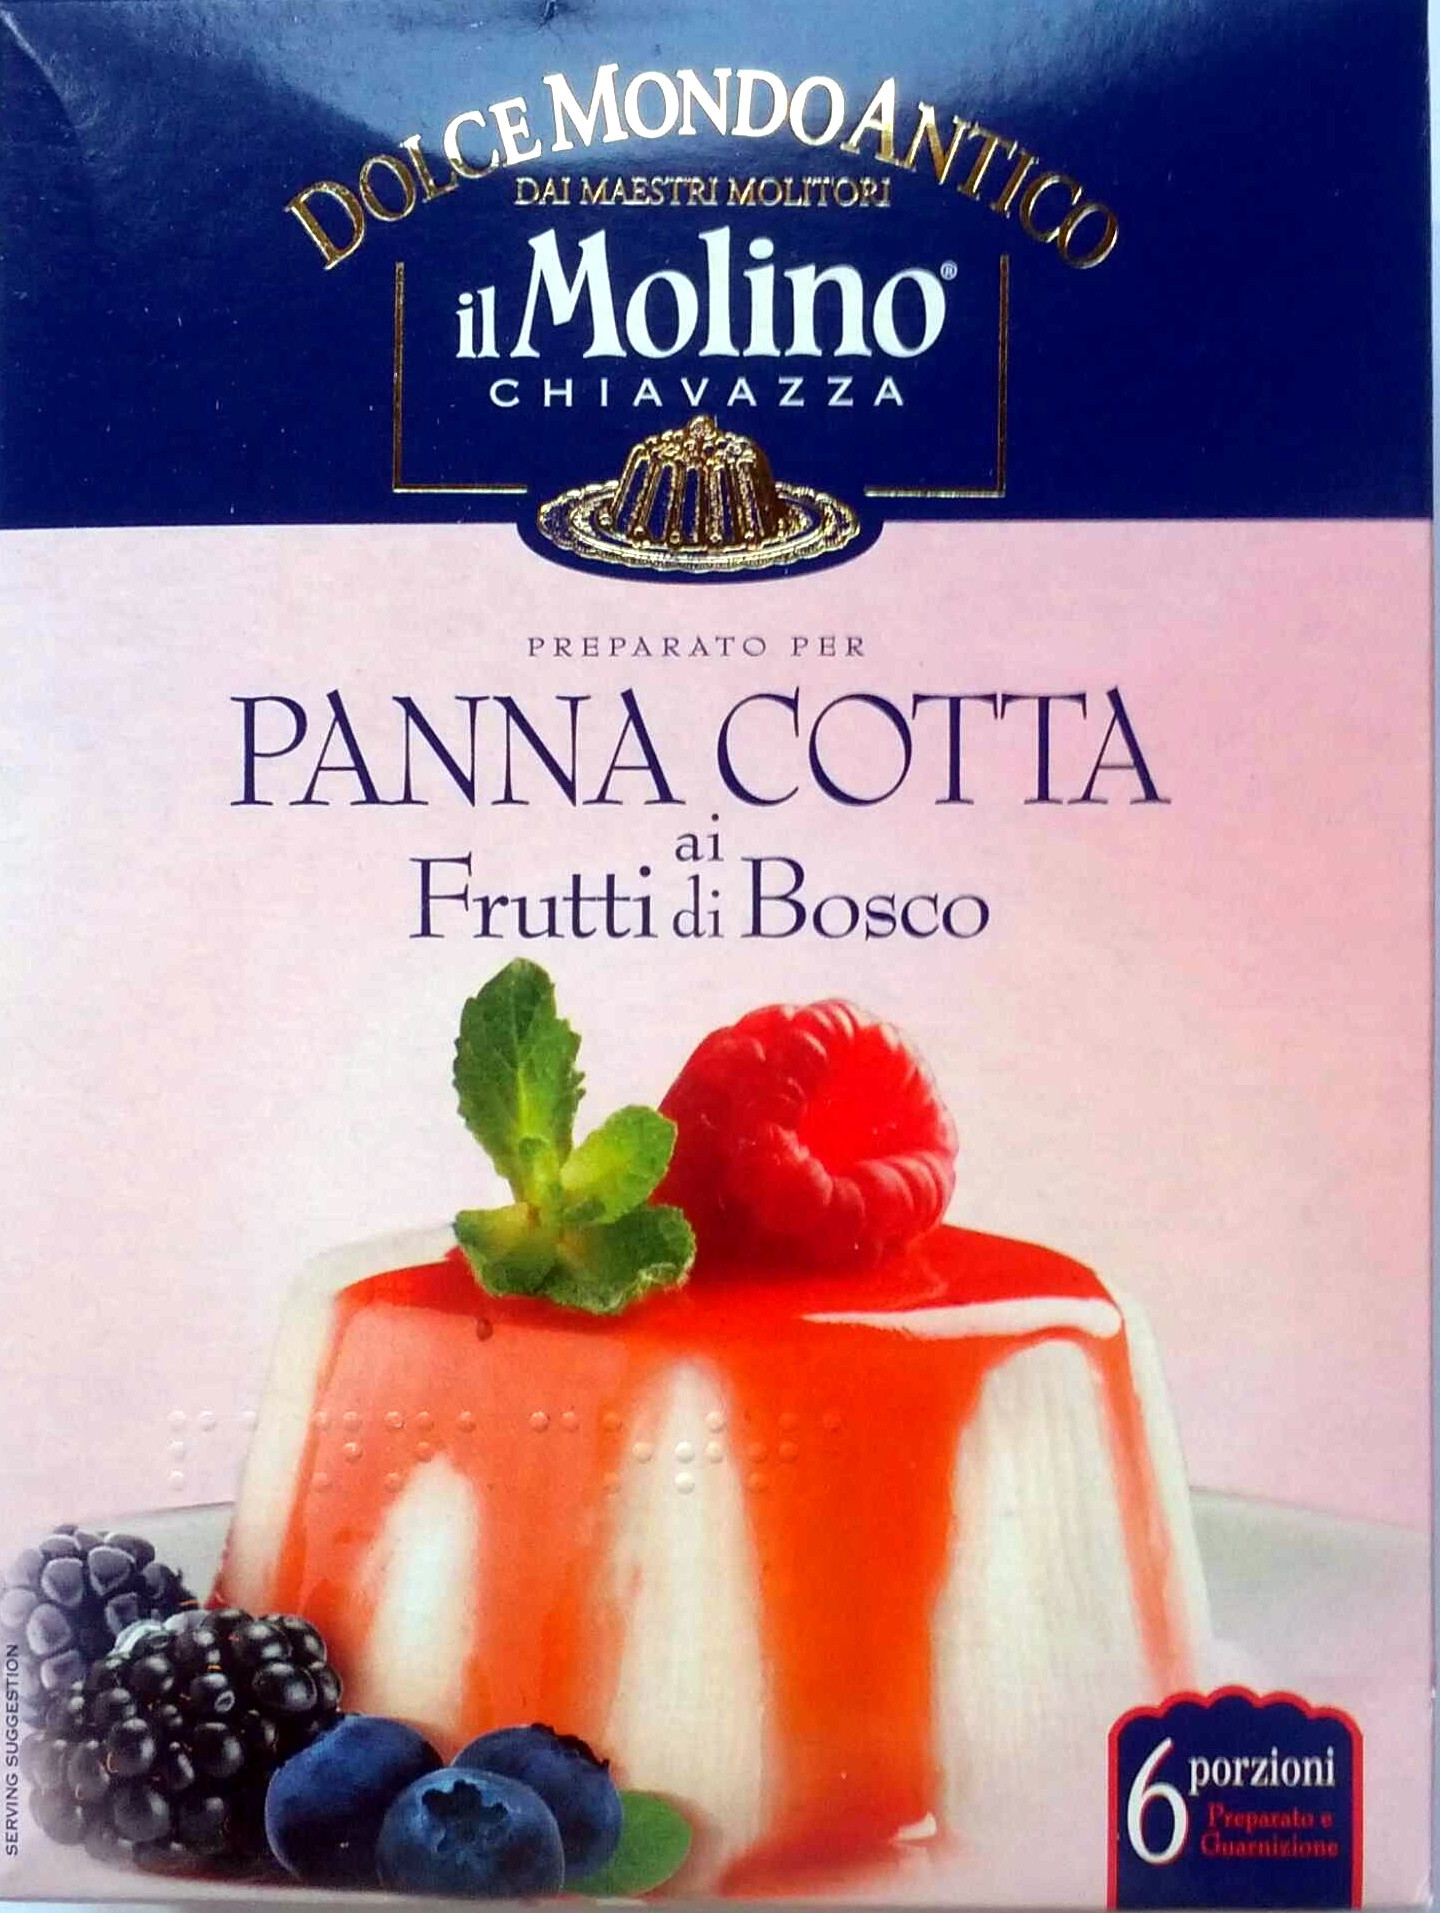 Preparato per Panna Cotta ai Frutti di Bosco - Product